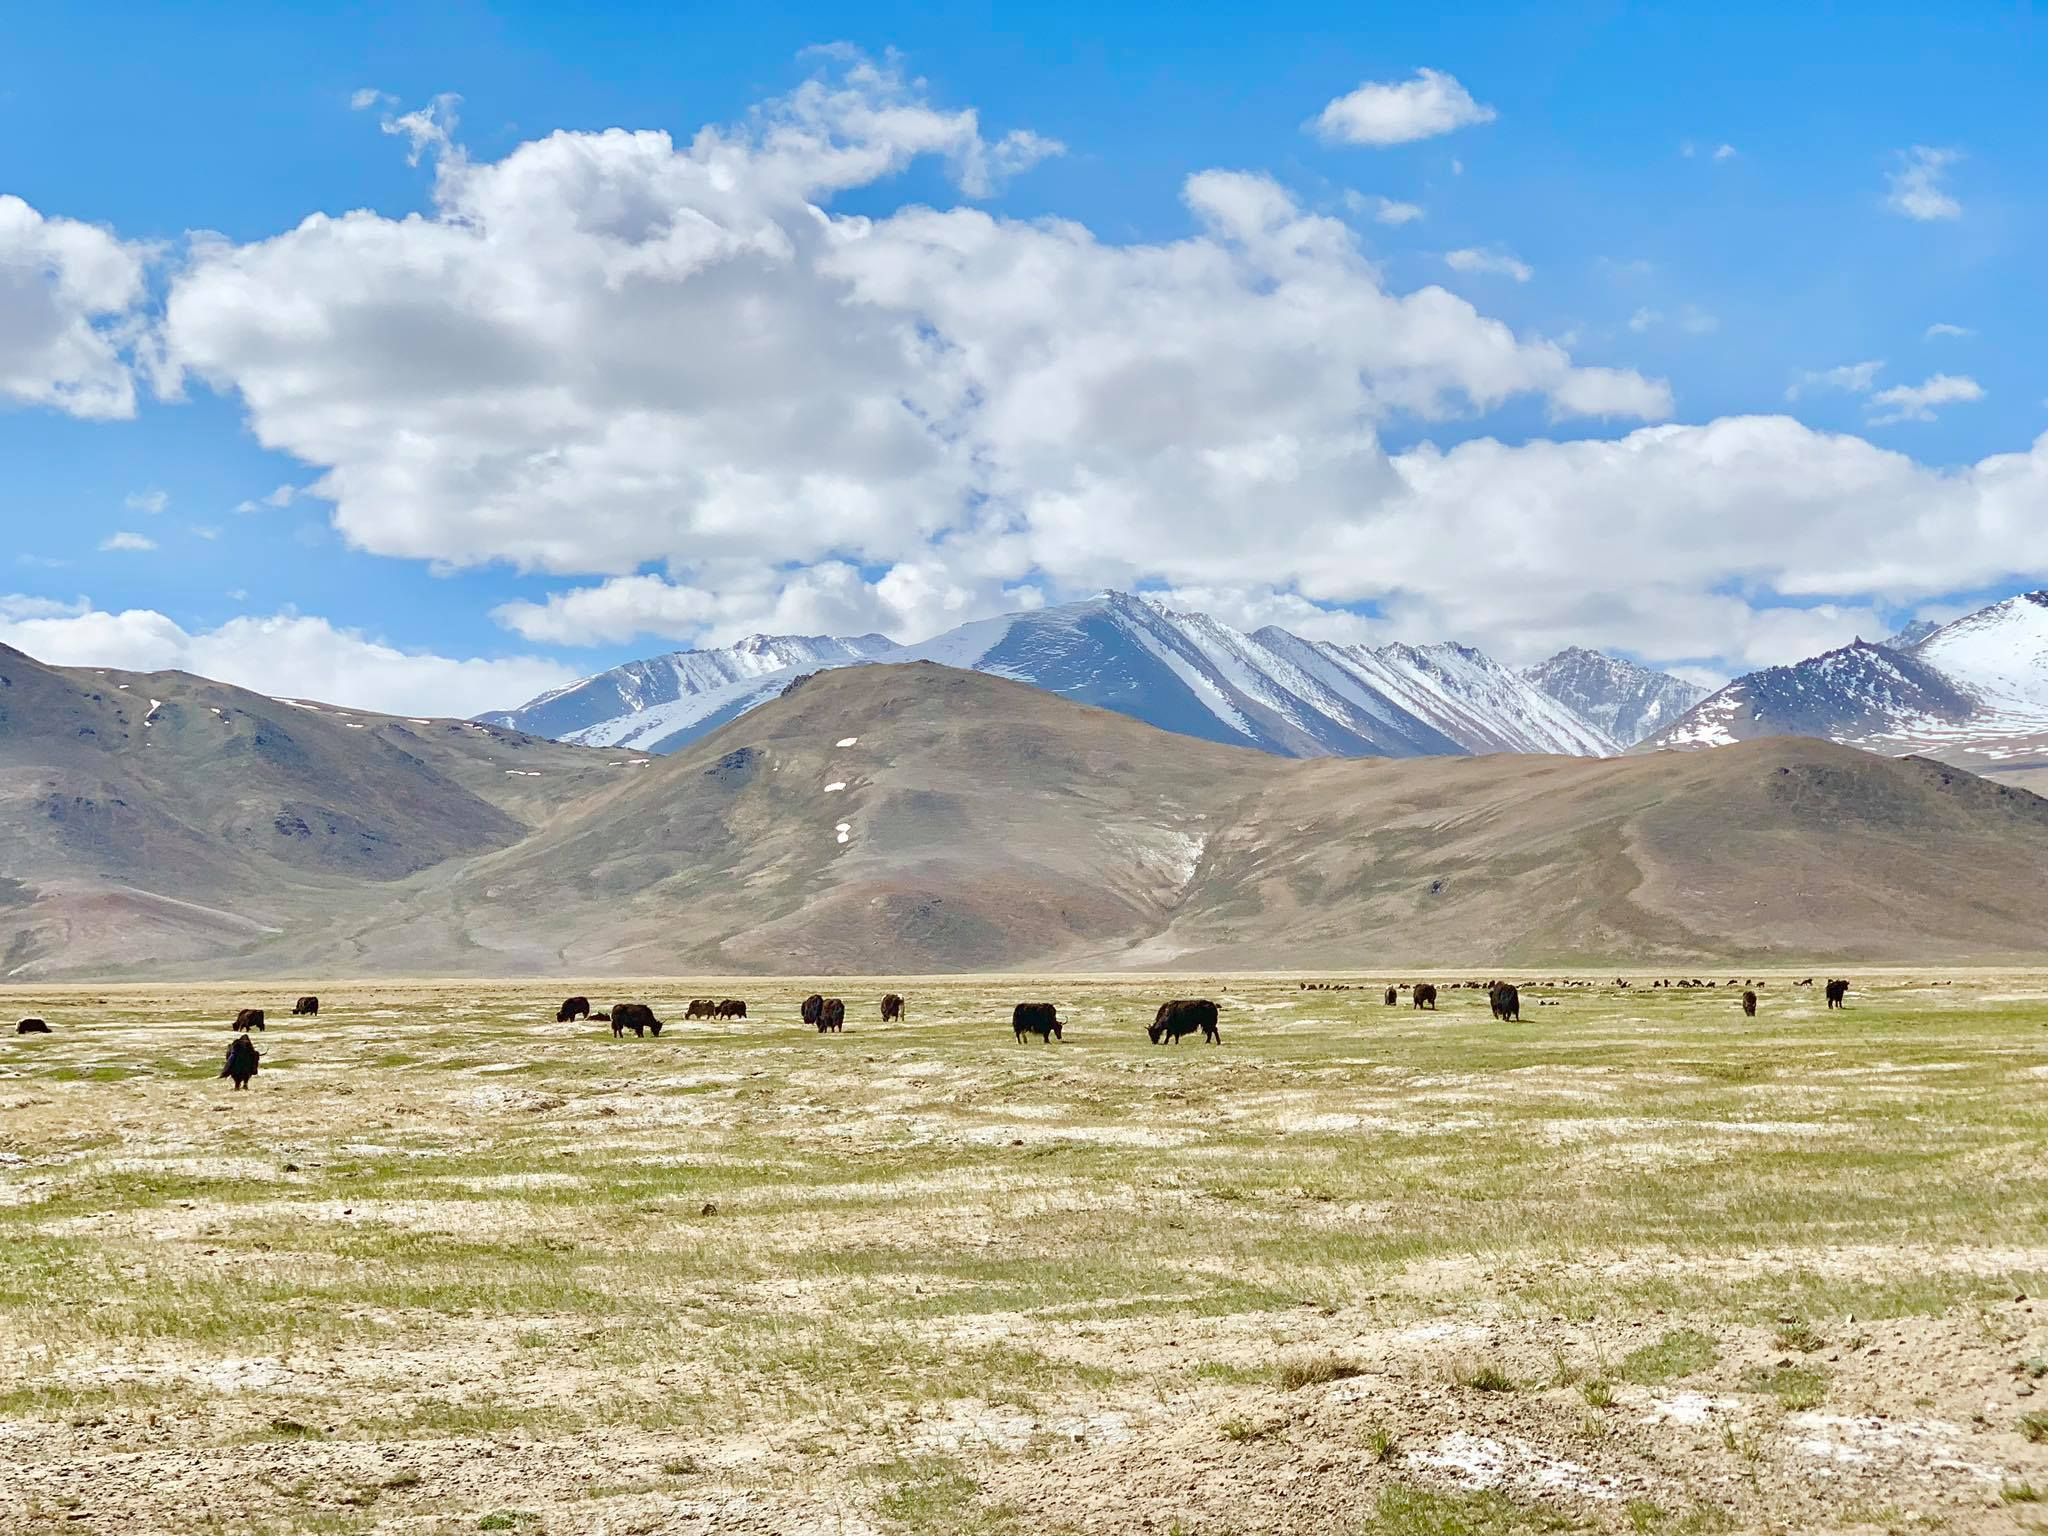 Kach Solo Travels in 2019 Our unexpected last stop during our Pamir Highway Roadtrip3.jpg